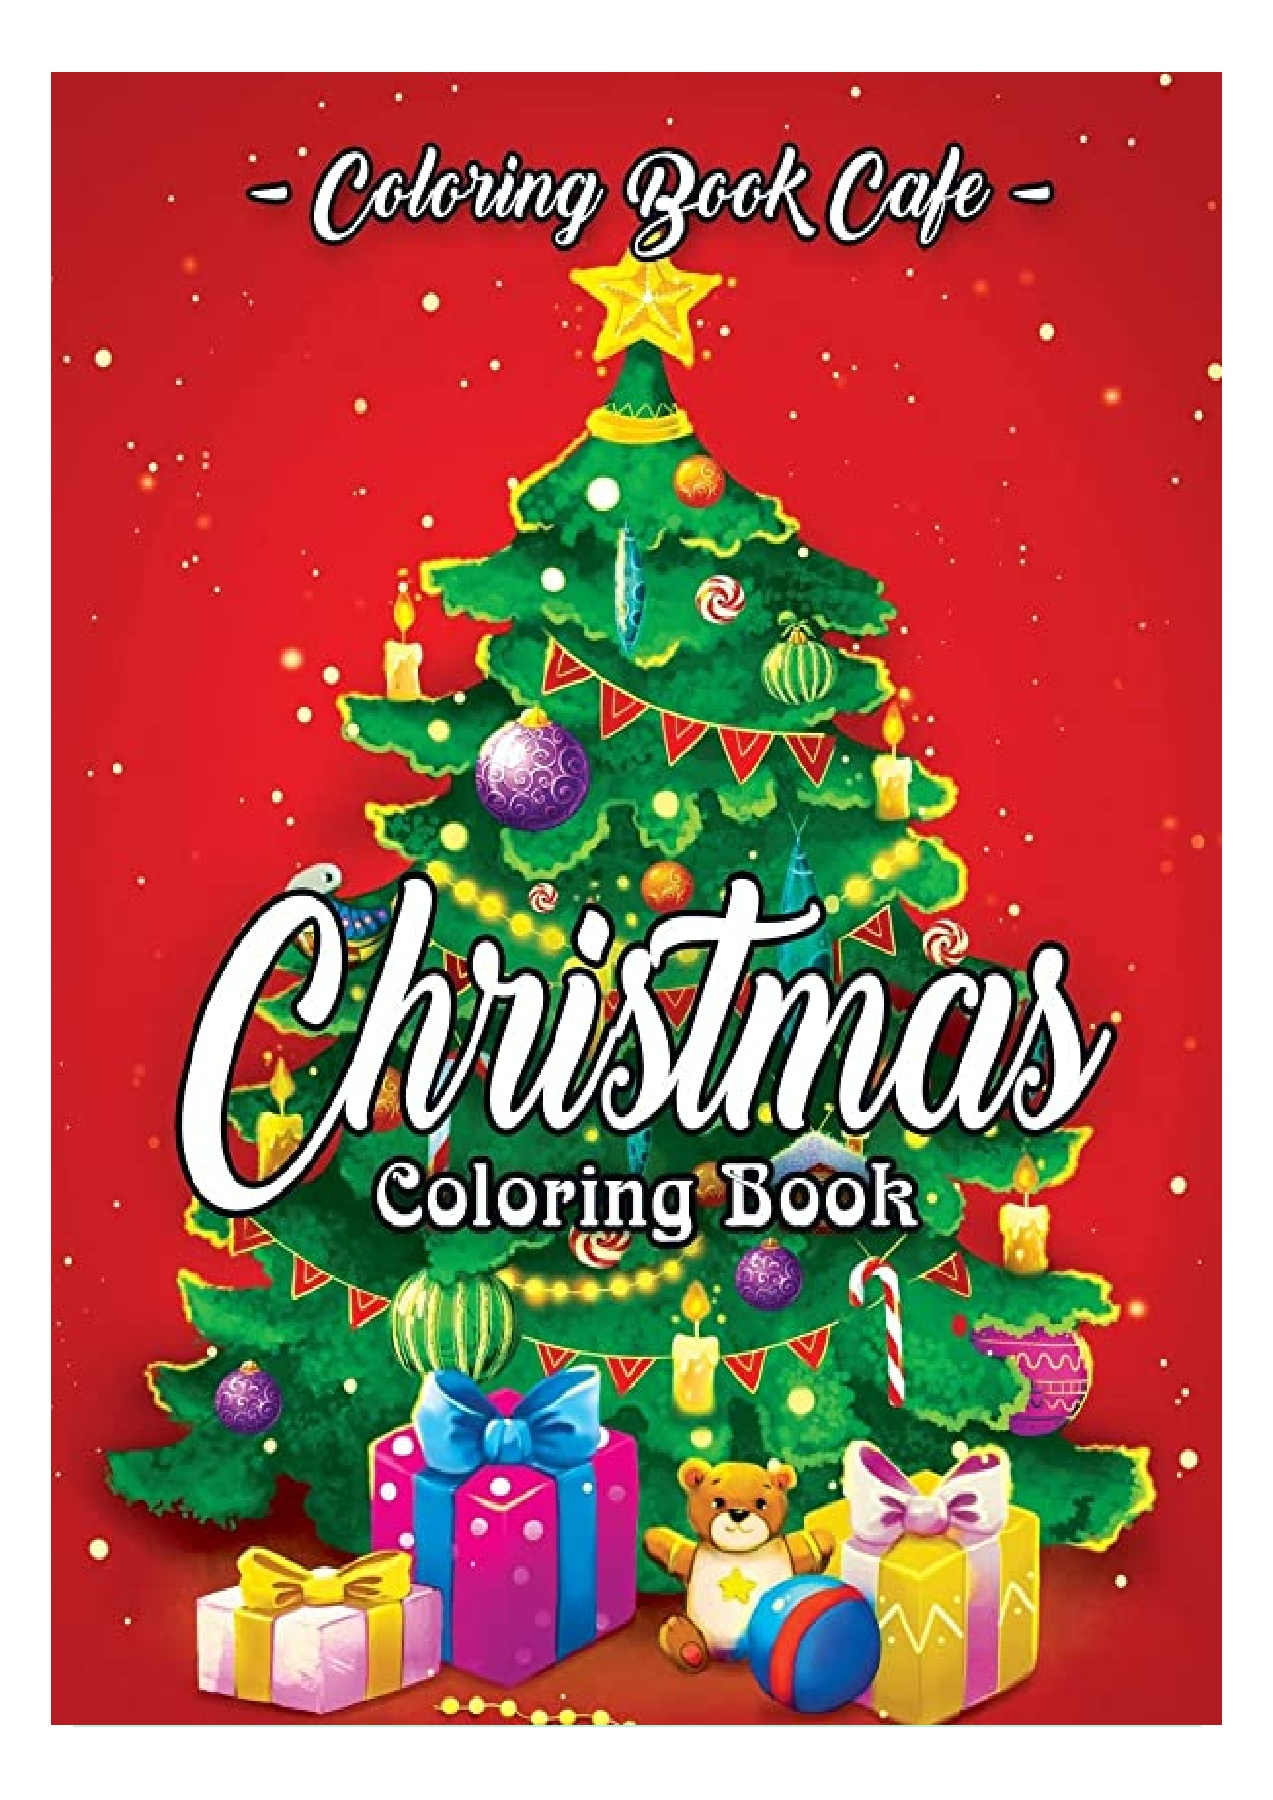 Ebook Online Christmas Coloring Book A Coloring Book For Adults Featuring Beautiful Winter Florals Festive Ornaments And Relaxing Christmas Scenes Book Online Flip Ebook Pages 1 3 Anyflip Anyflip